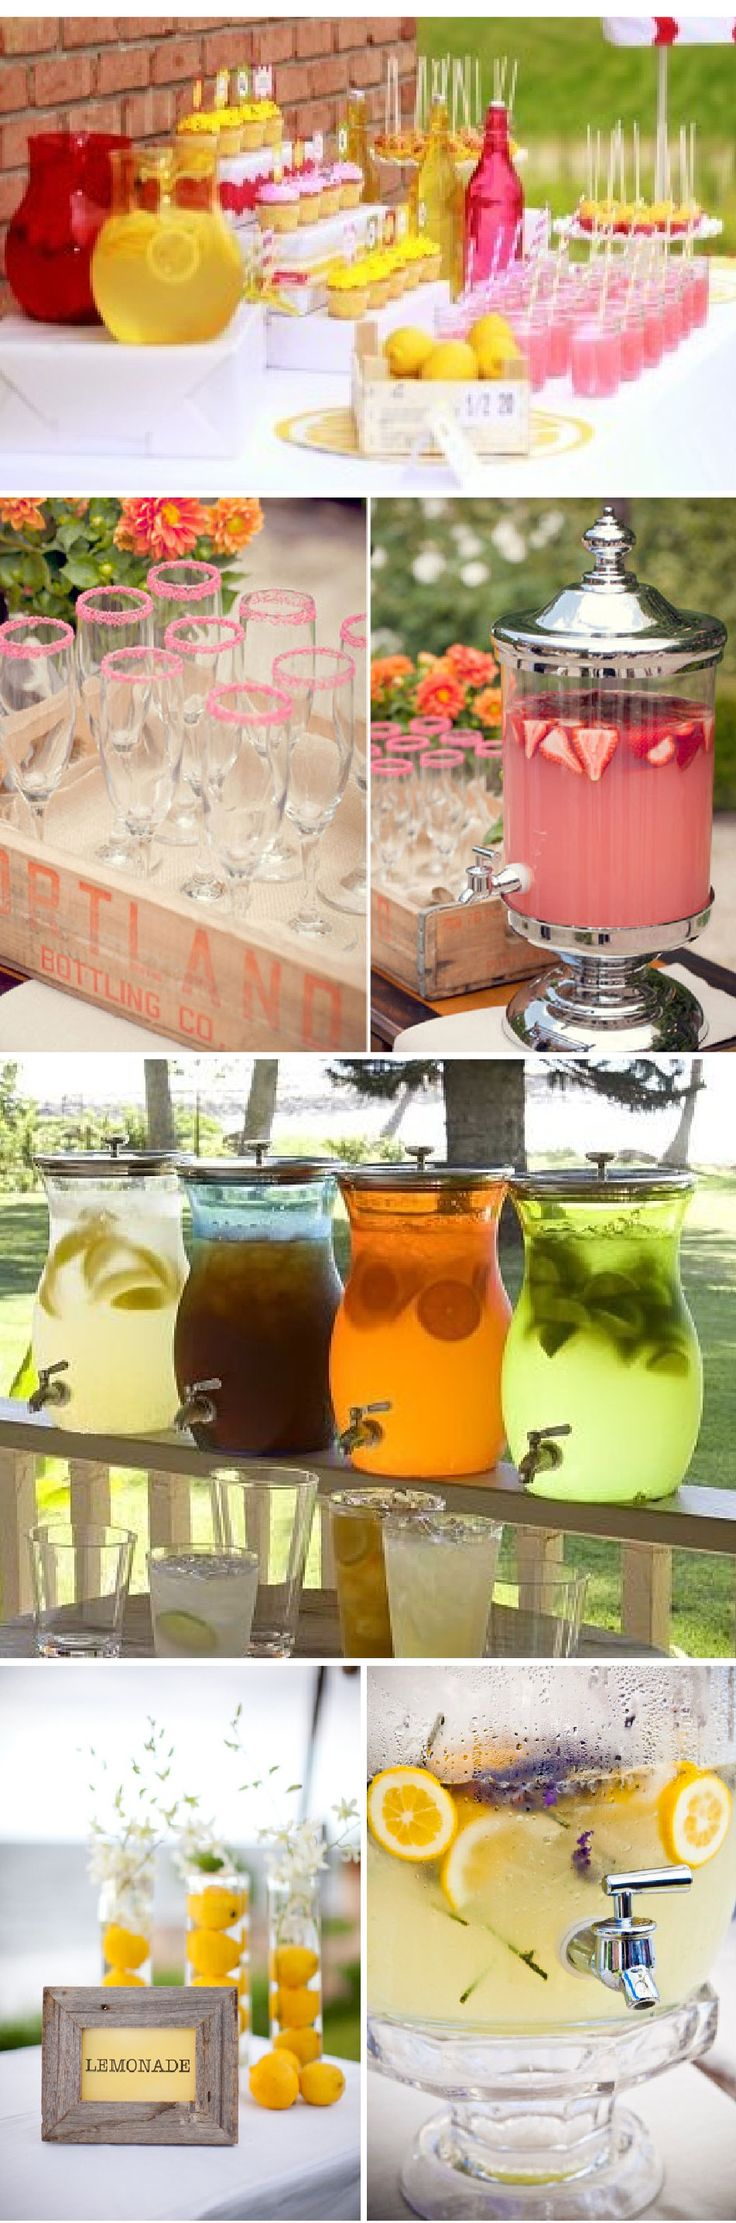 Lemonade Bar - great idea for a wedding or shower!  With and without alcohol. Use small frames, labels or tags to indicate what's in each container. :) Love the fruit and lavender inside